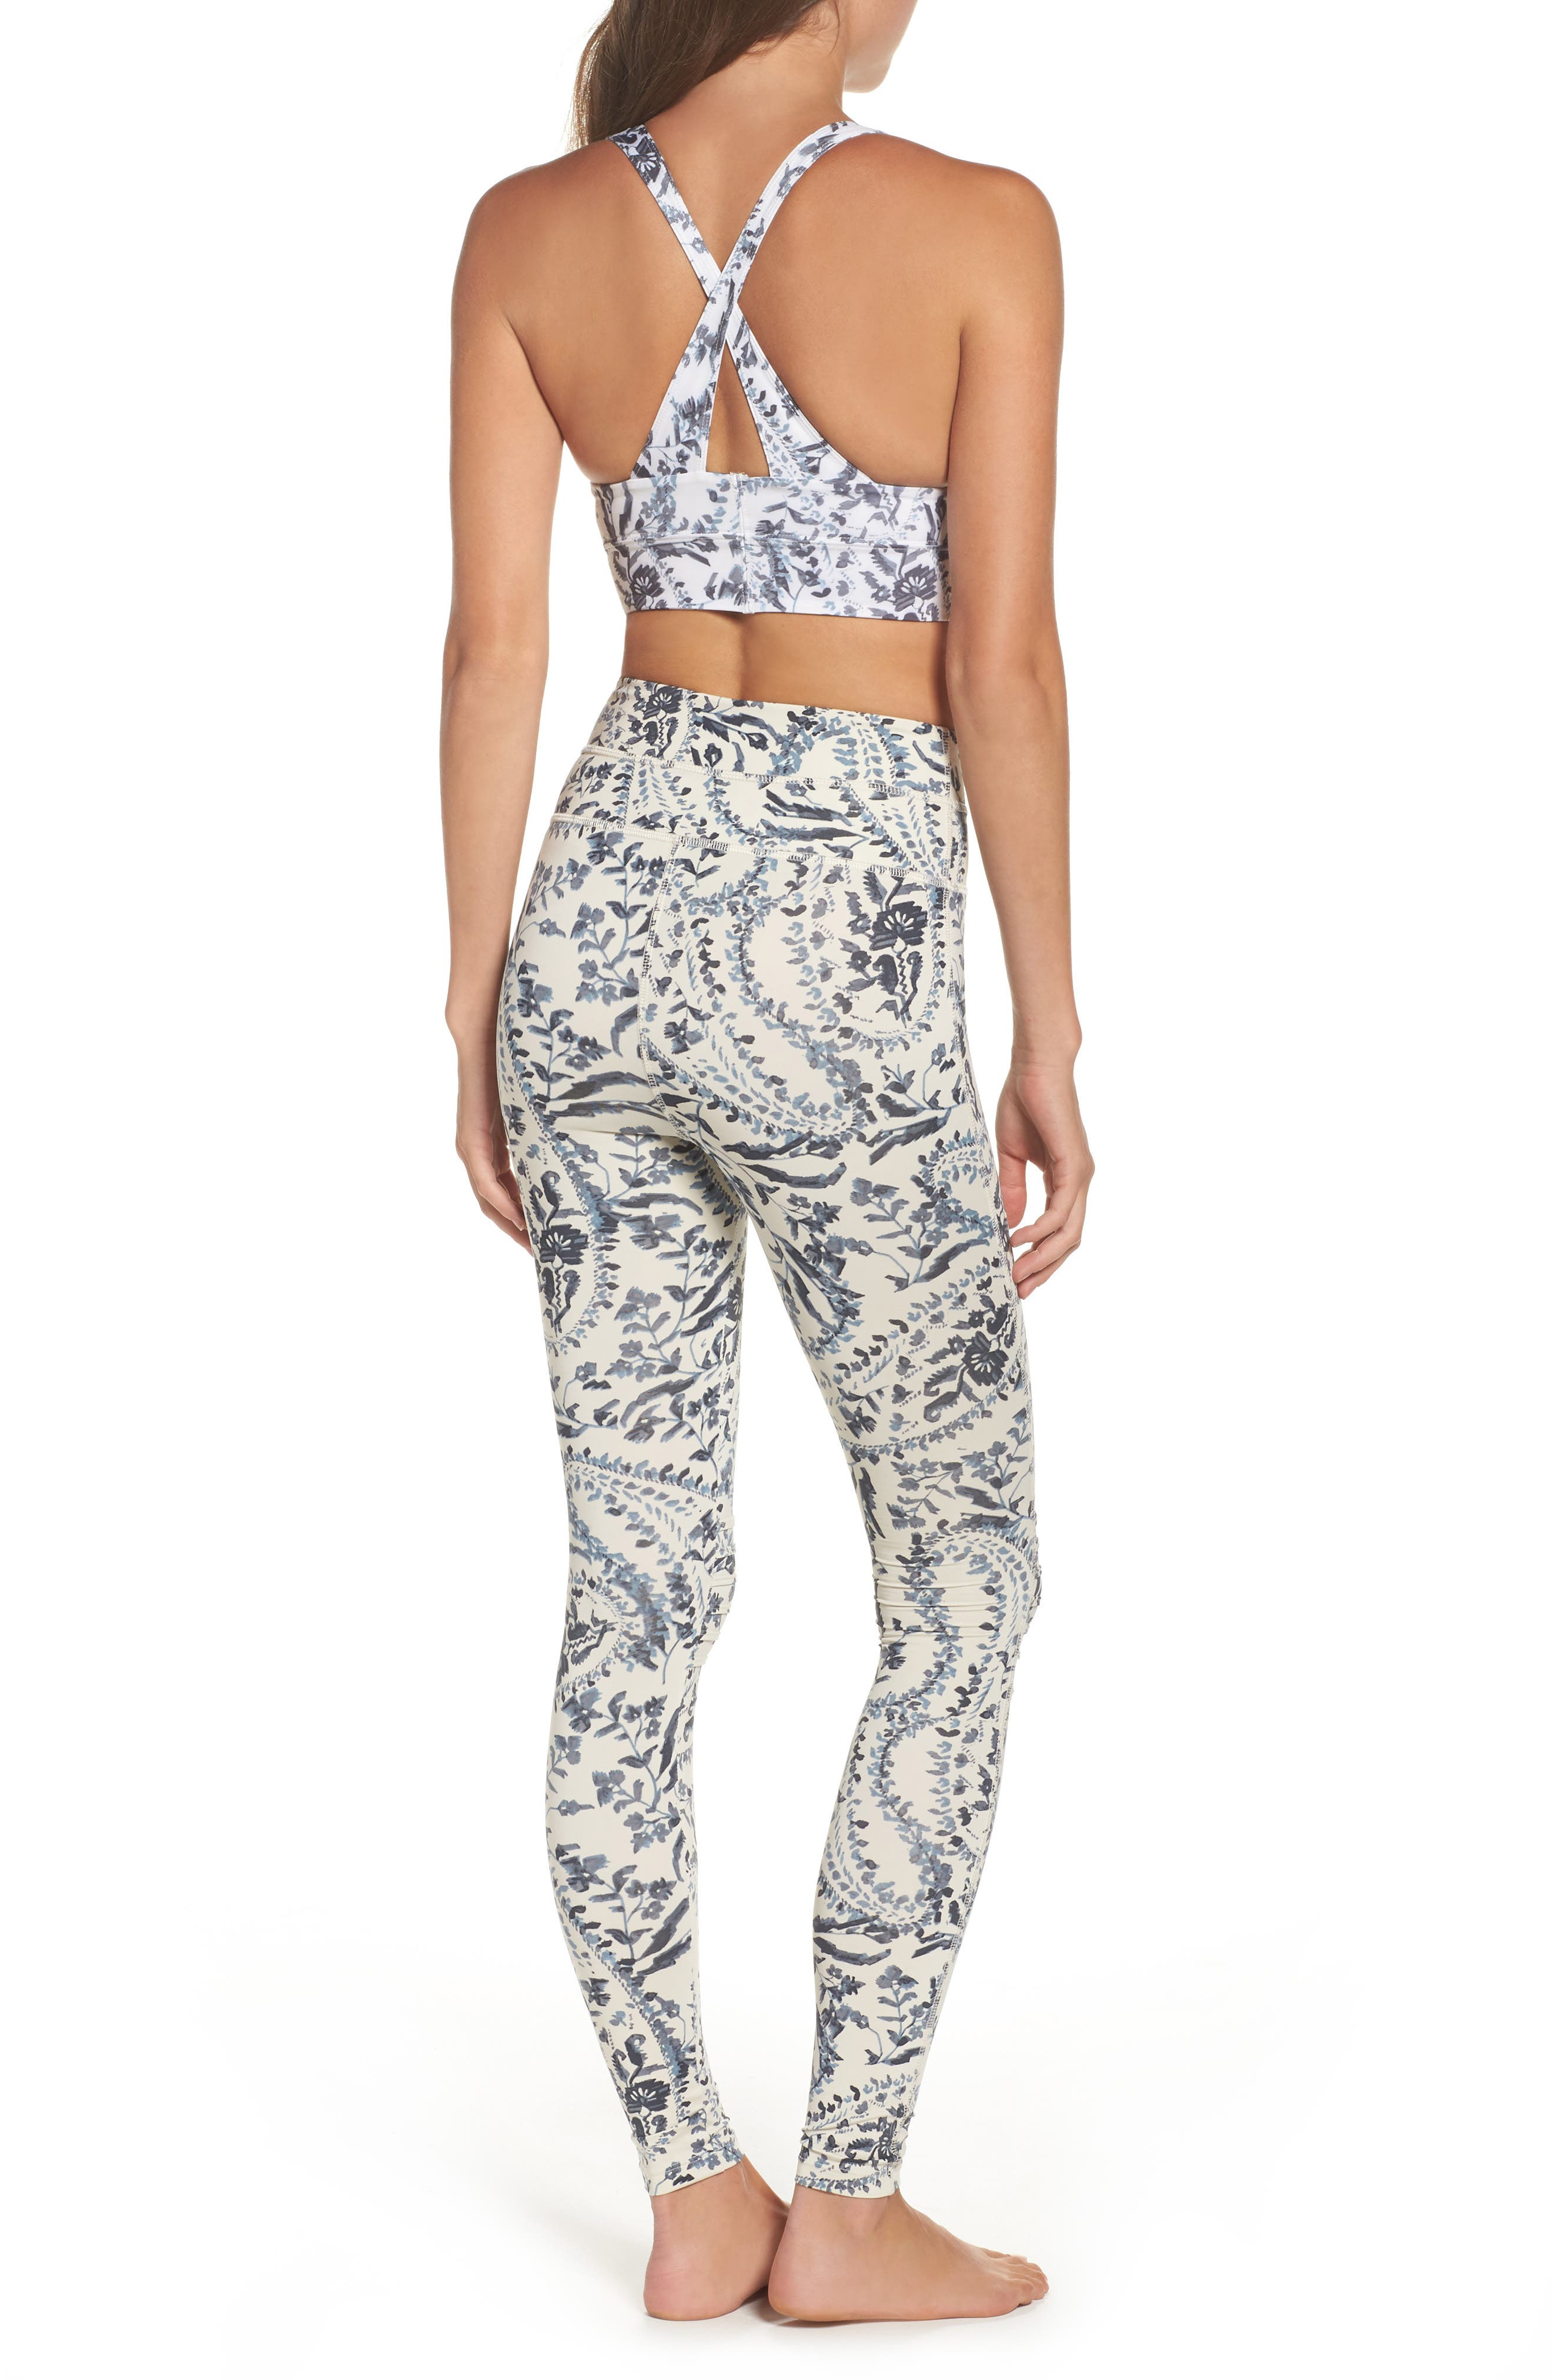 FP Movement Print City Slicker High Waist Leggings,                             Alternate thumbnail 9, color,                             400